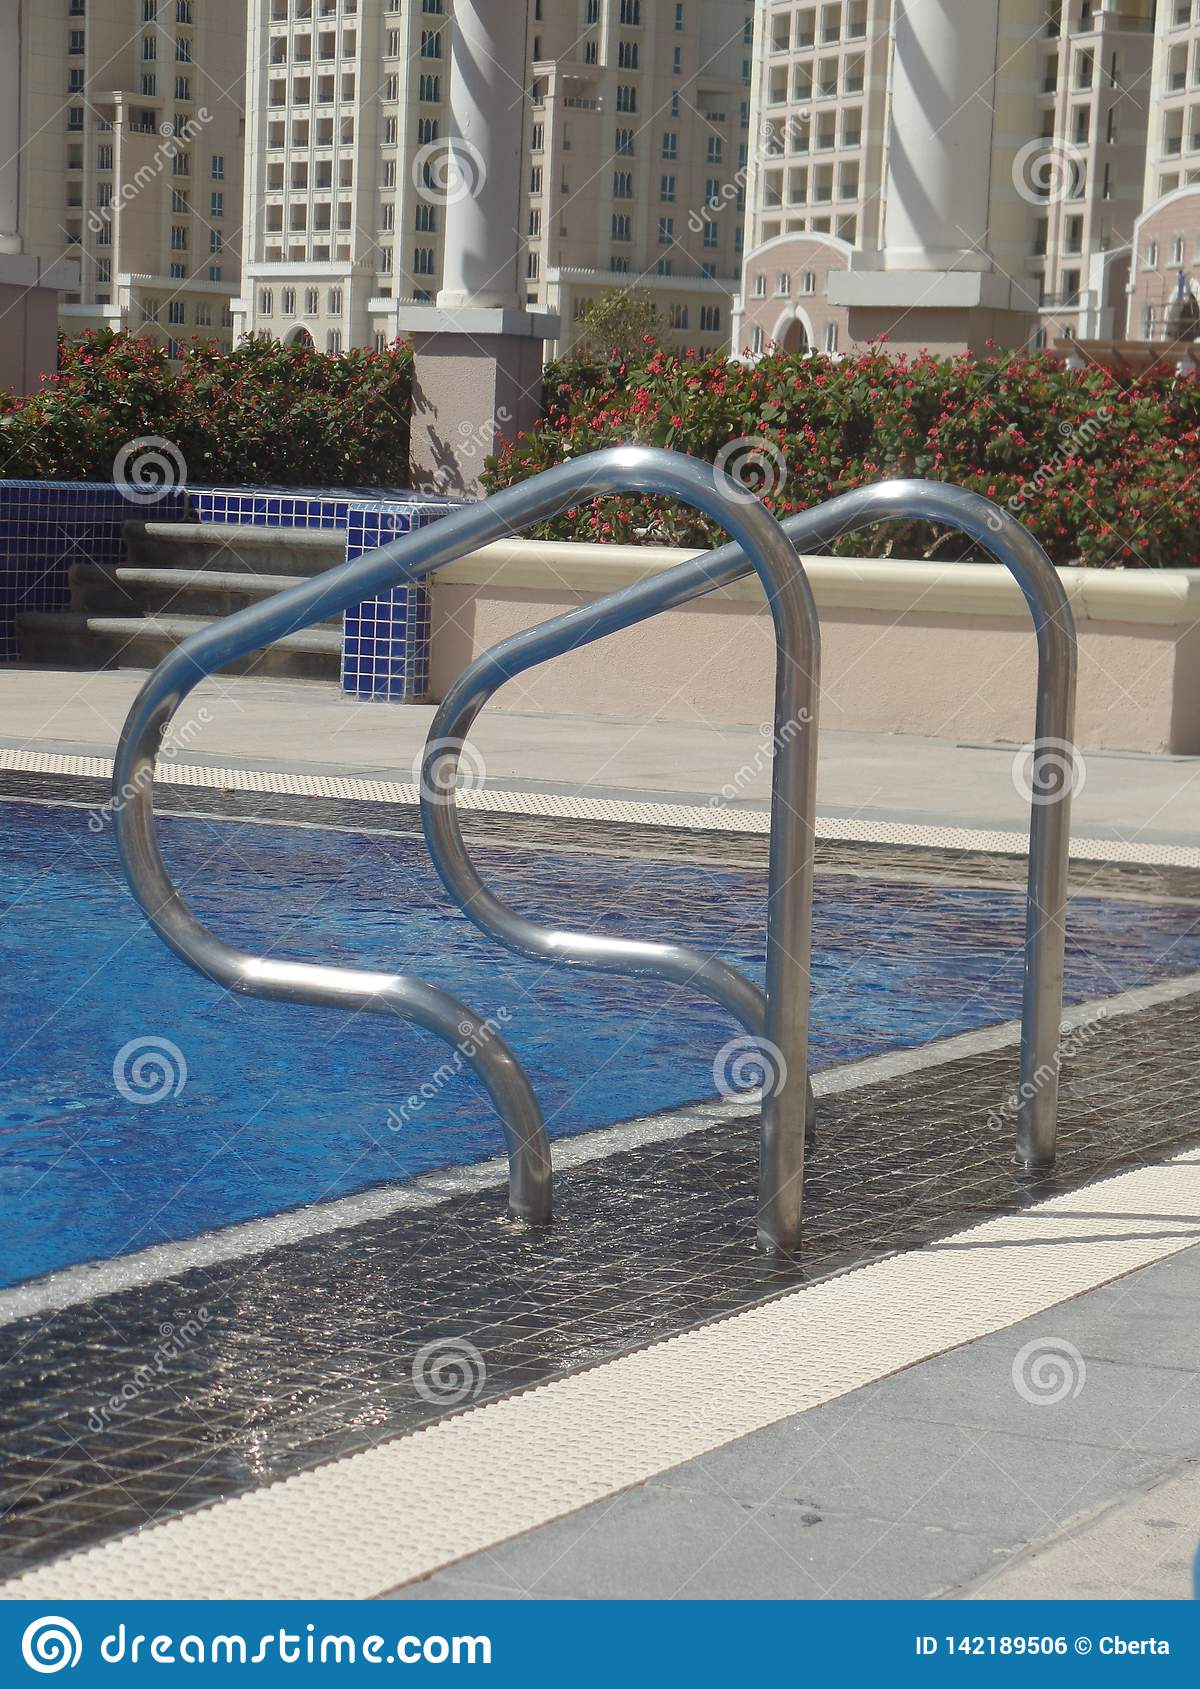 Close up image of swimming pool handrails